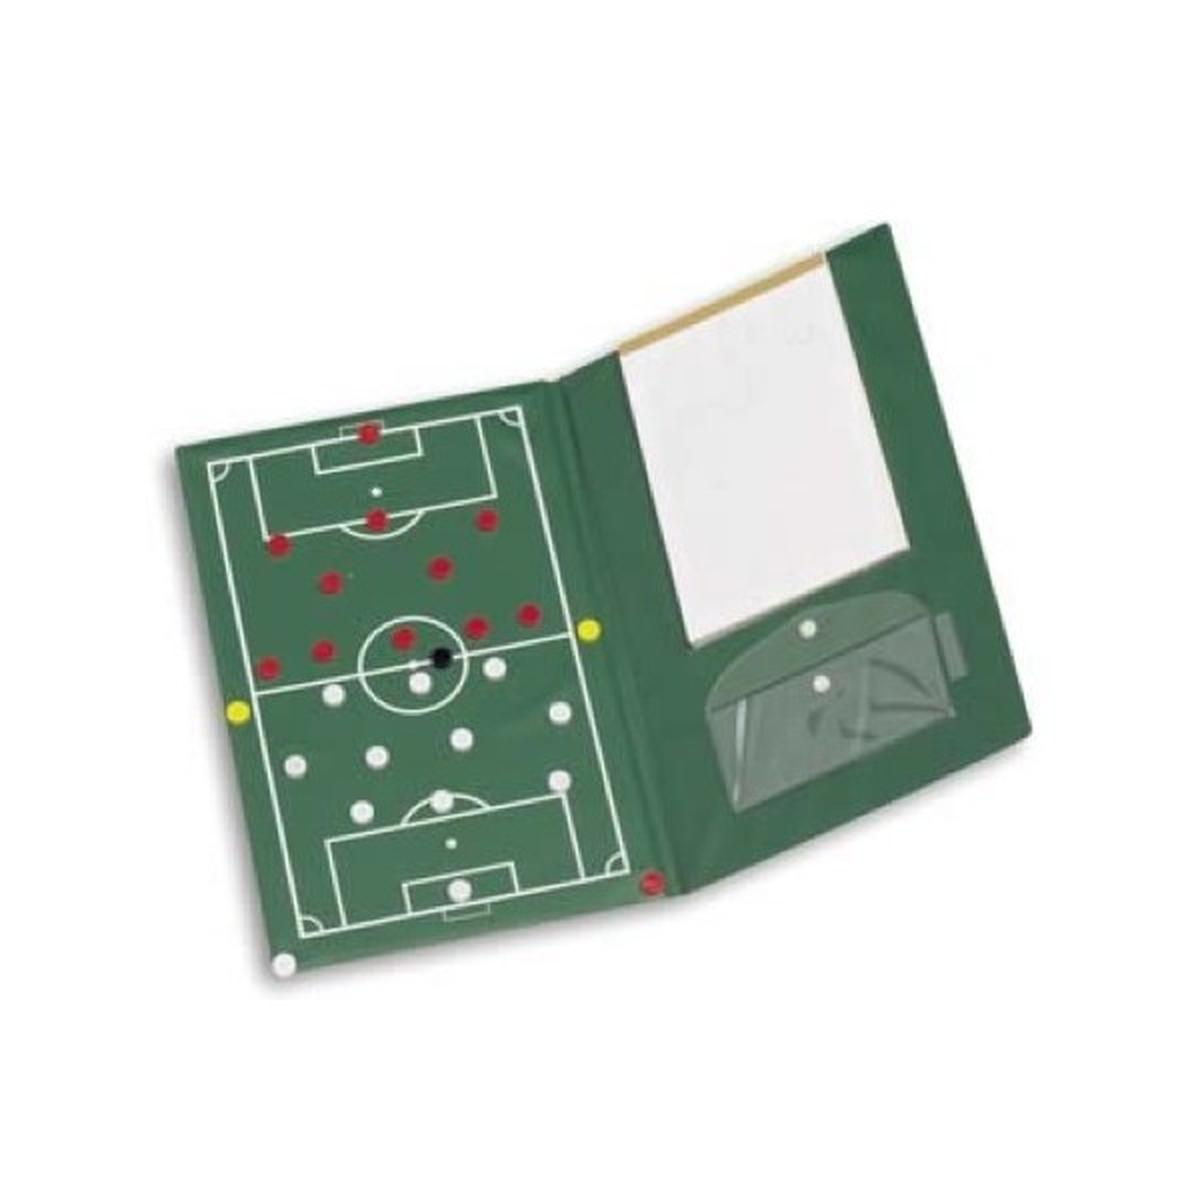 actualit u00e9 - cahier de l u0026 39 entraineur - club football aix universit u00e9 club football